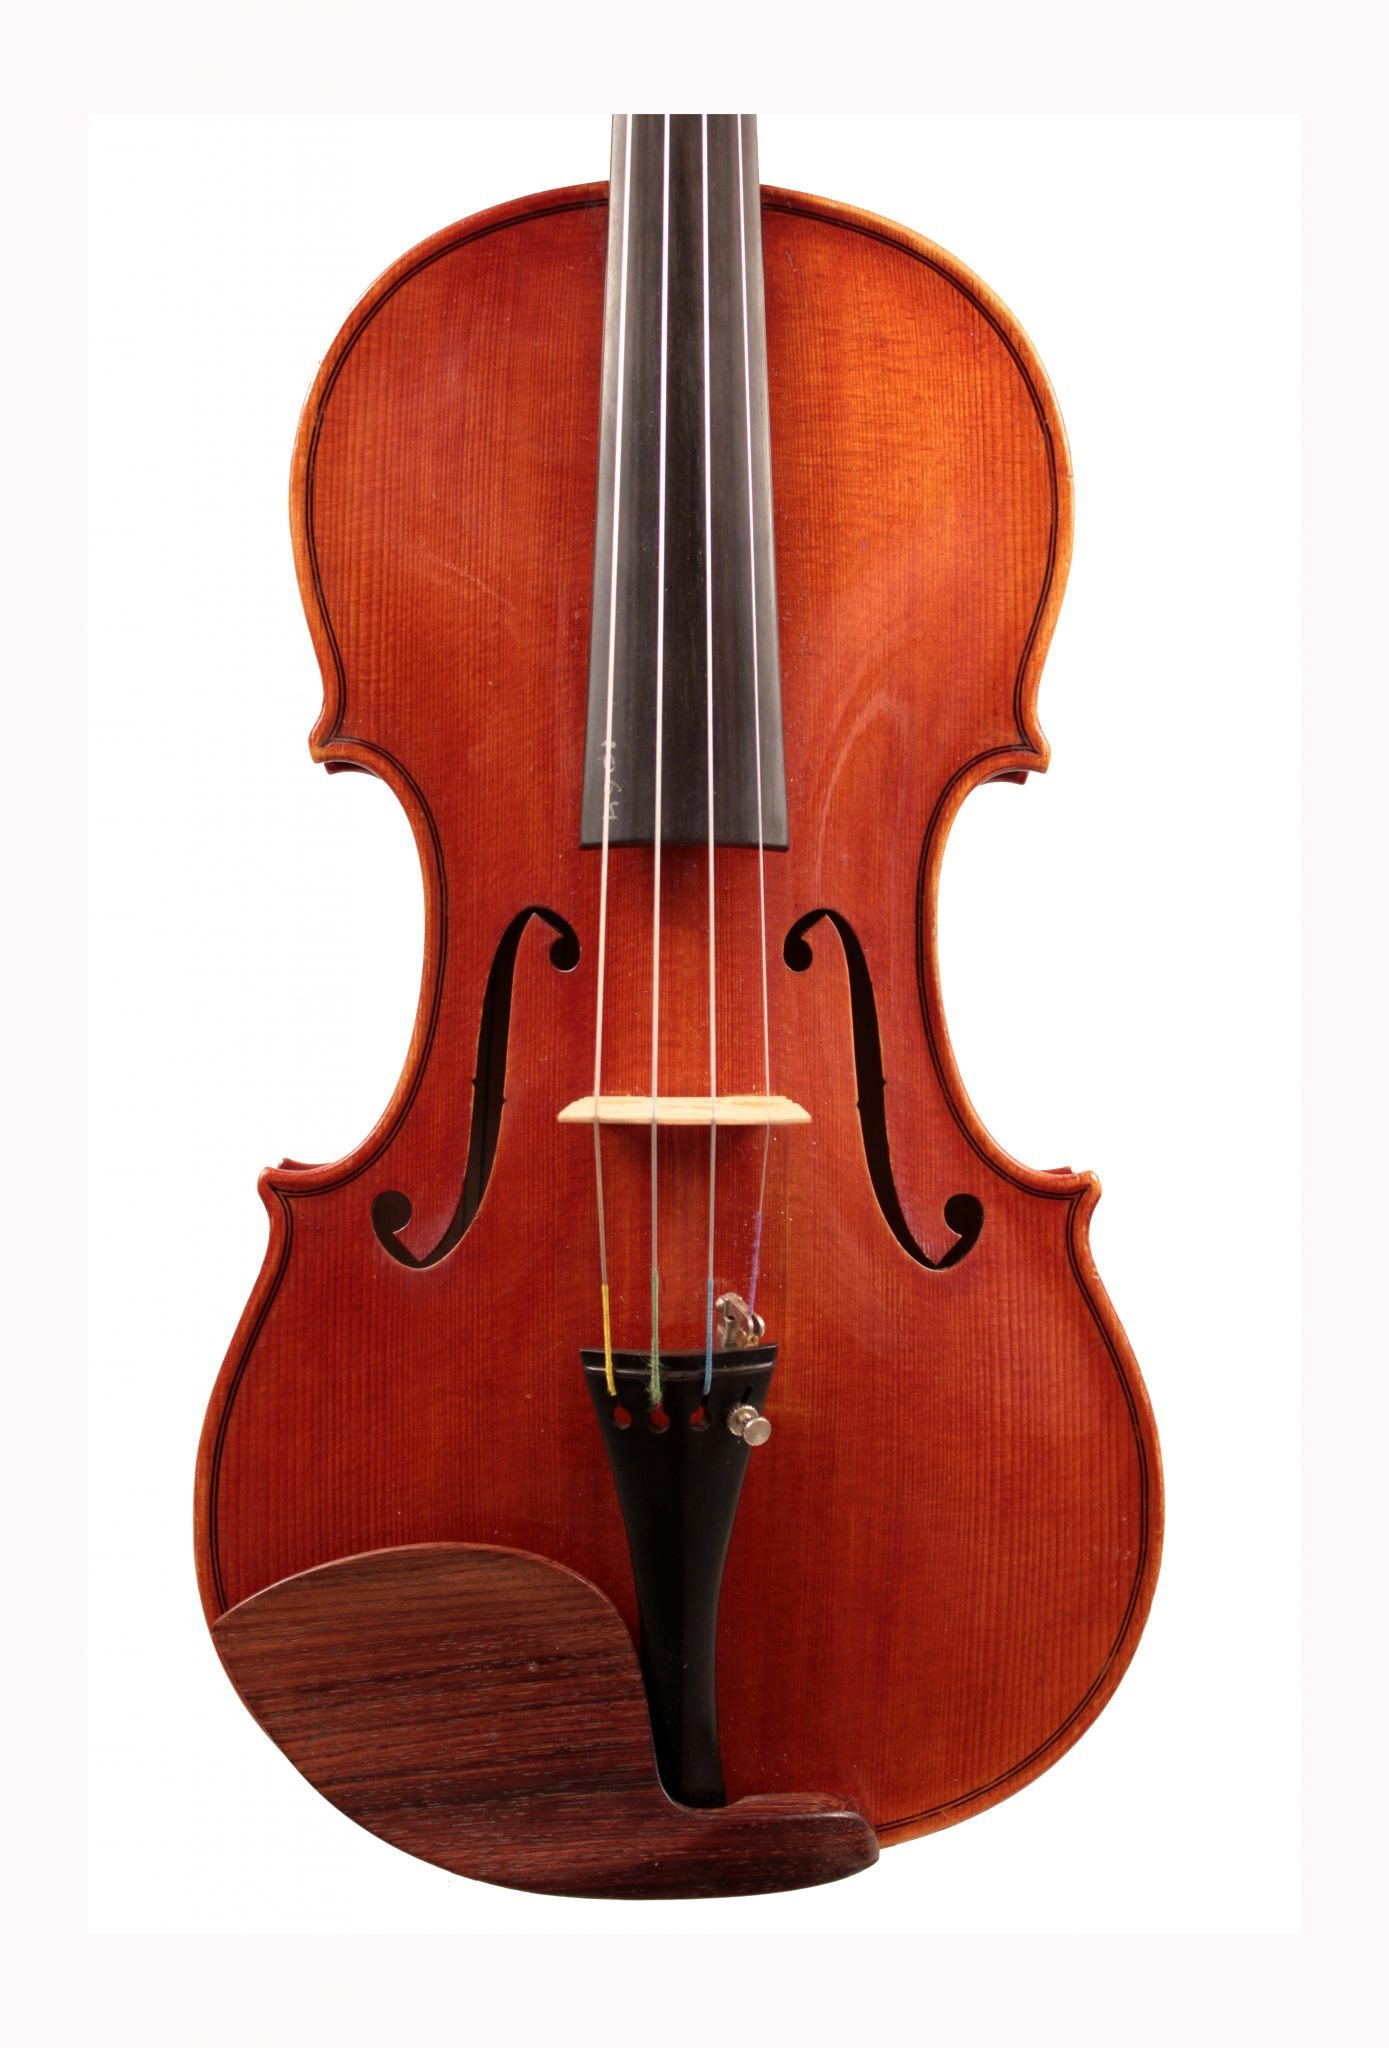 Violin by Mirco Tarasconi 1928 for sale at Bridgewood and Neitzert London